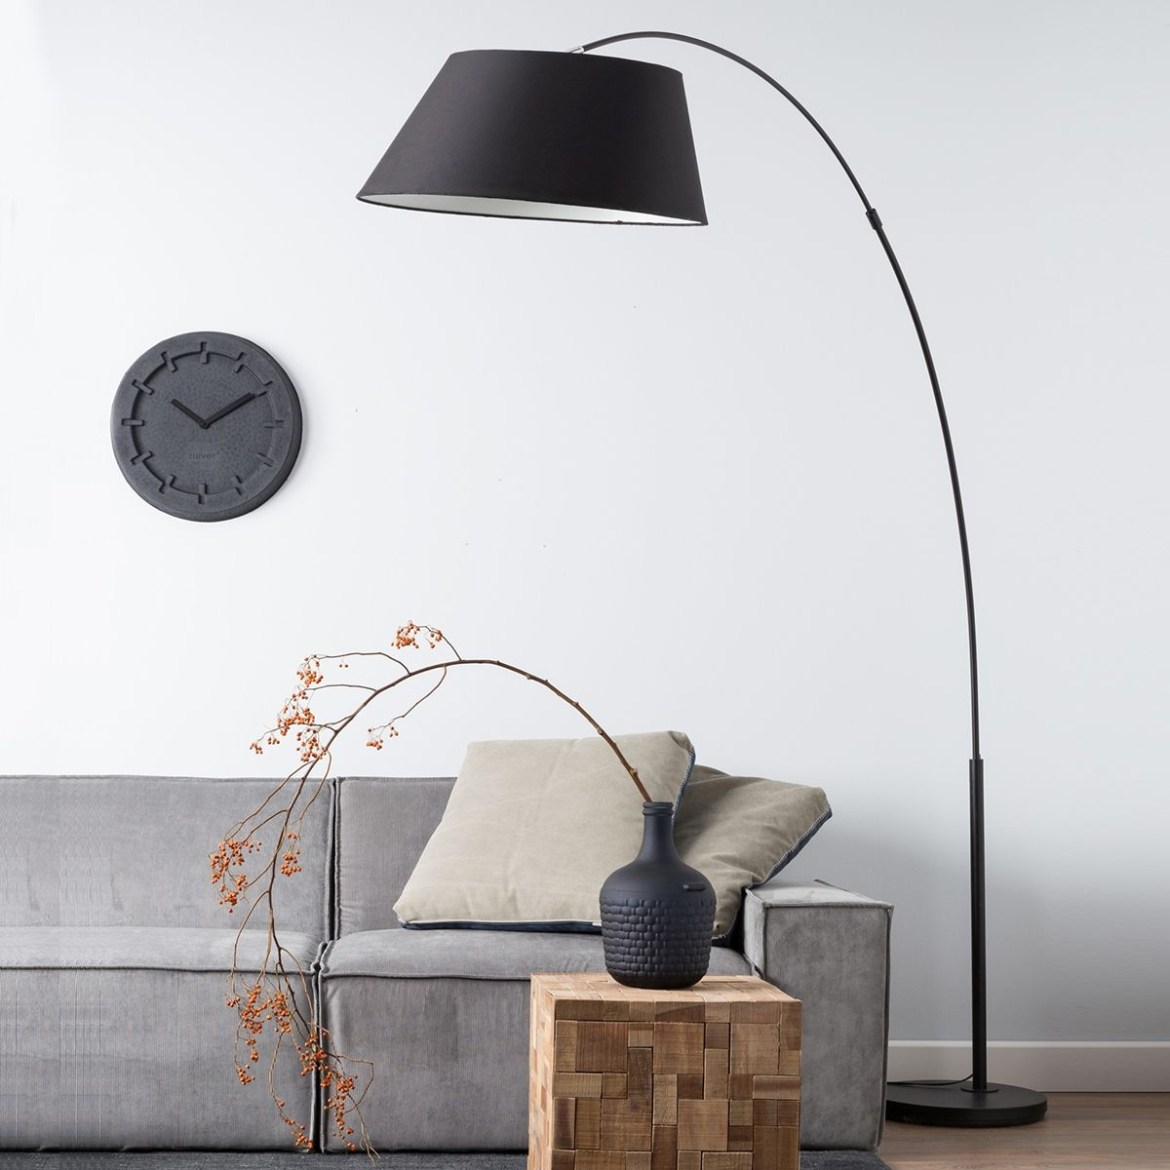 10 contemporary floor lamp design ideas to inspire you